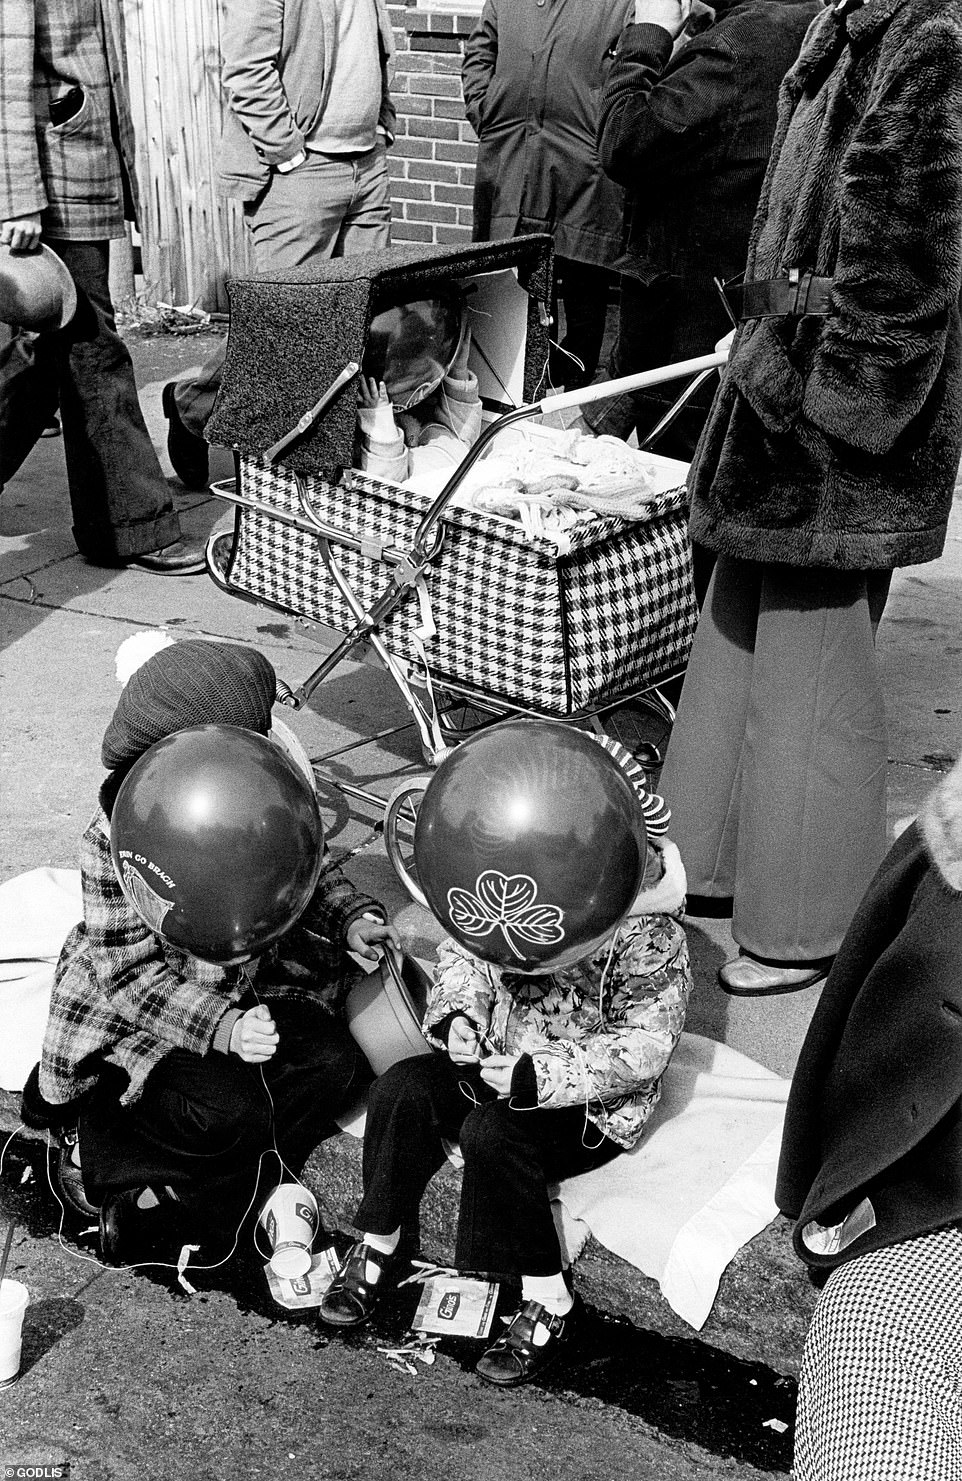 Balloons obscure the faces of two children sitting on a busy curb in Manhattan. Godlis said: 'Walking around and catching the rhythm of the street while taking photographs is like therapy to me. It grounds me'